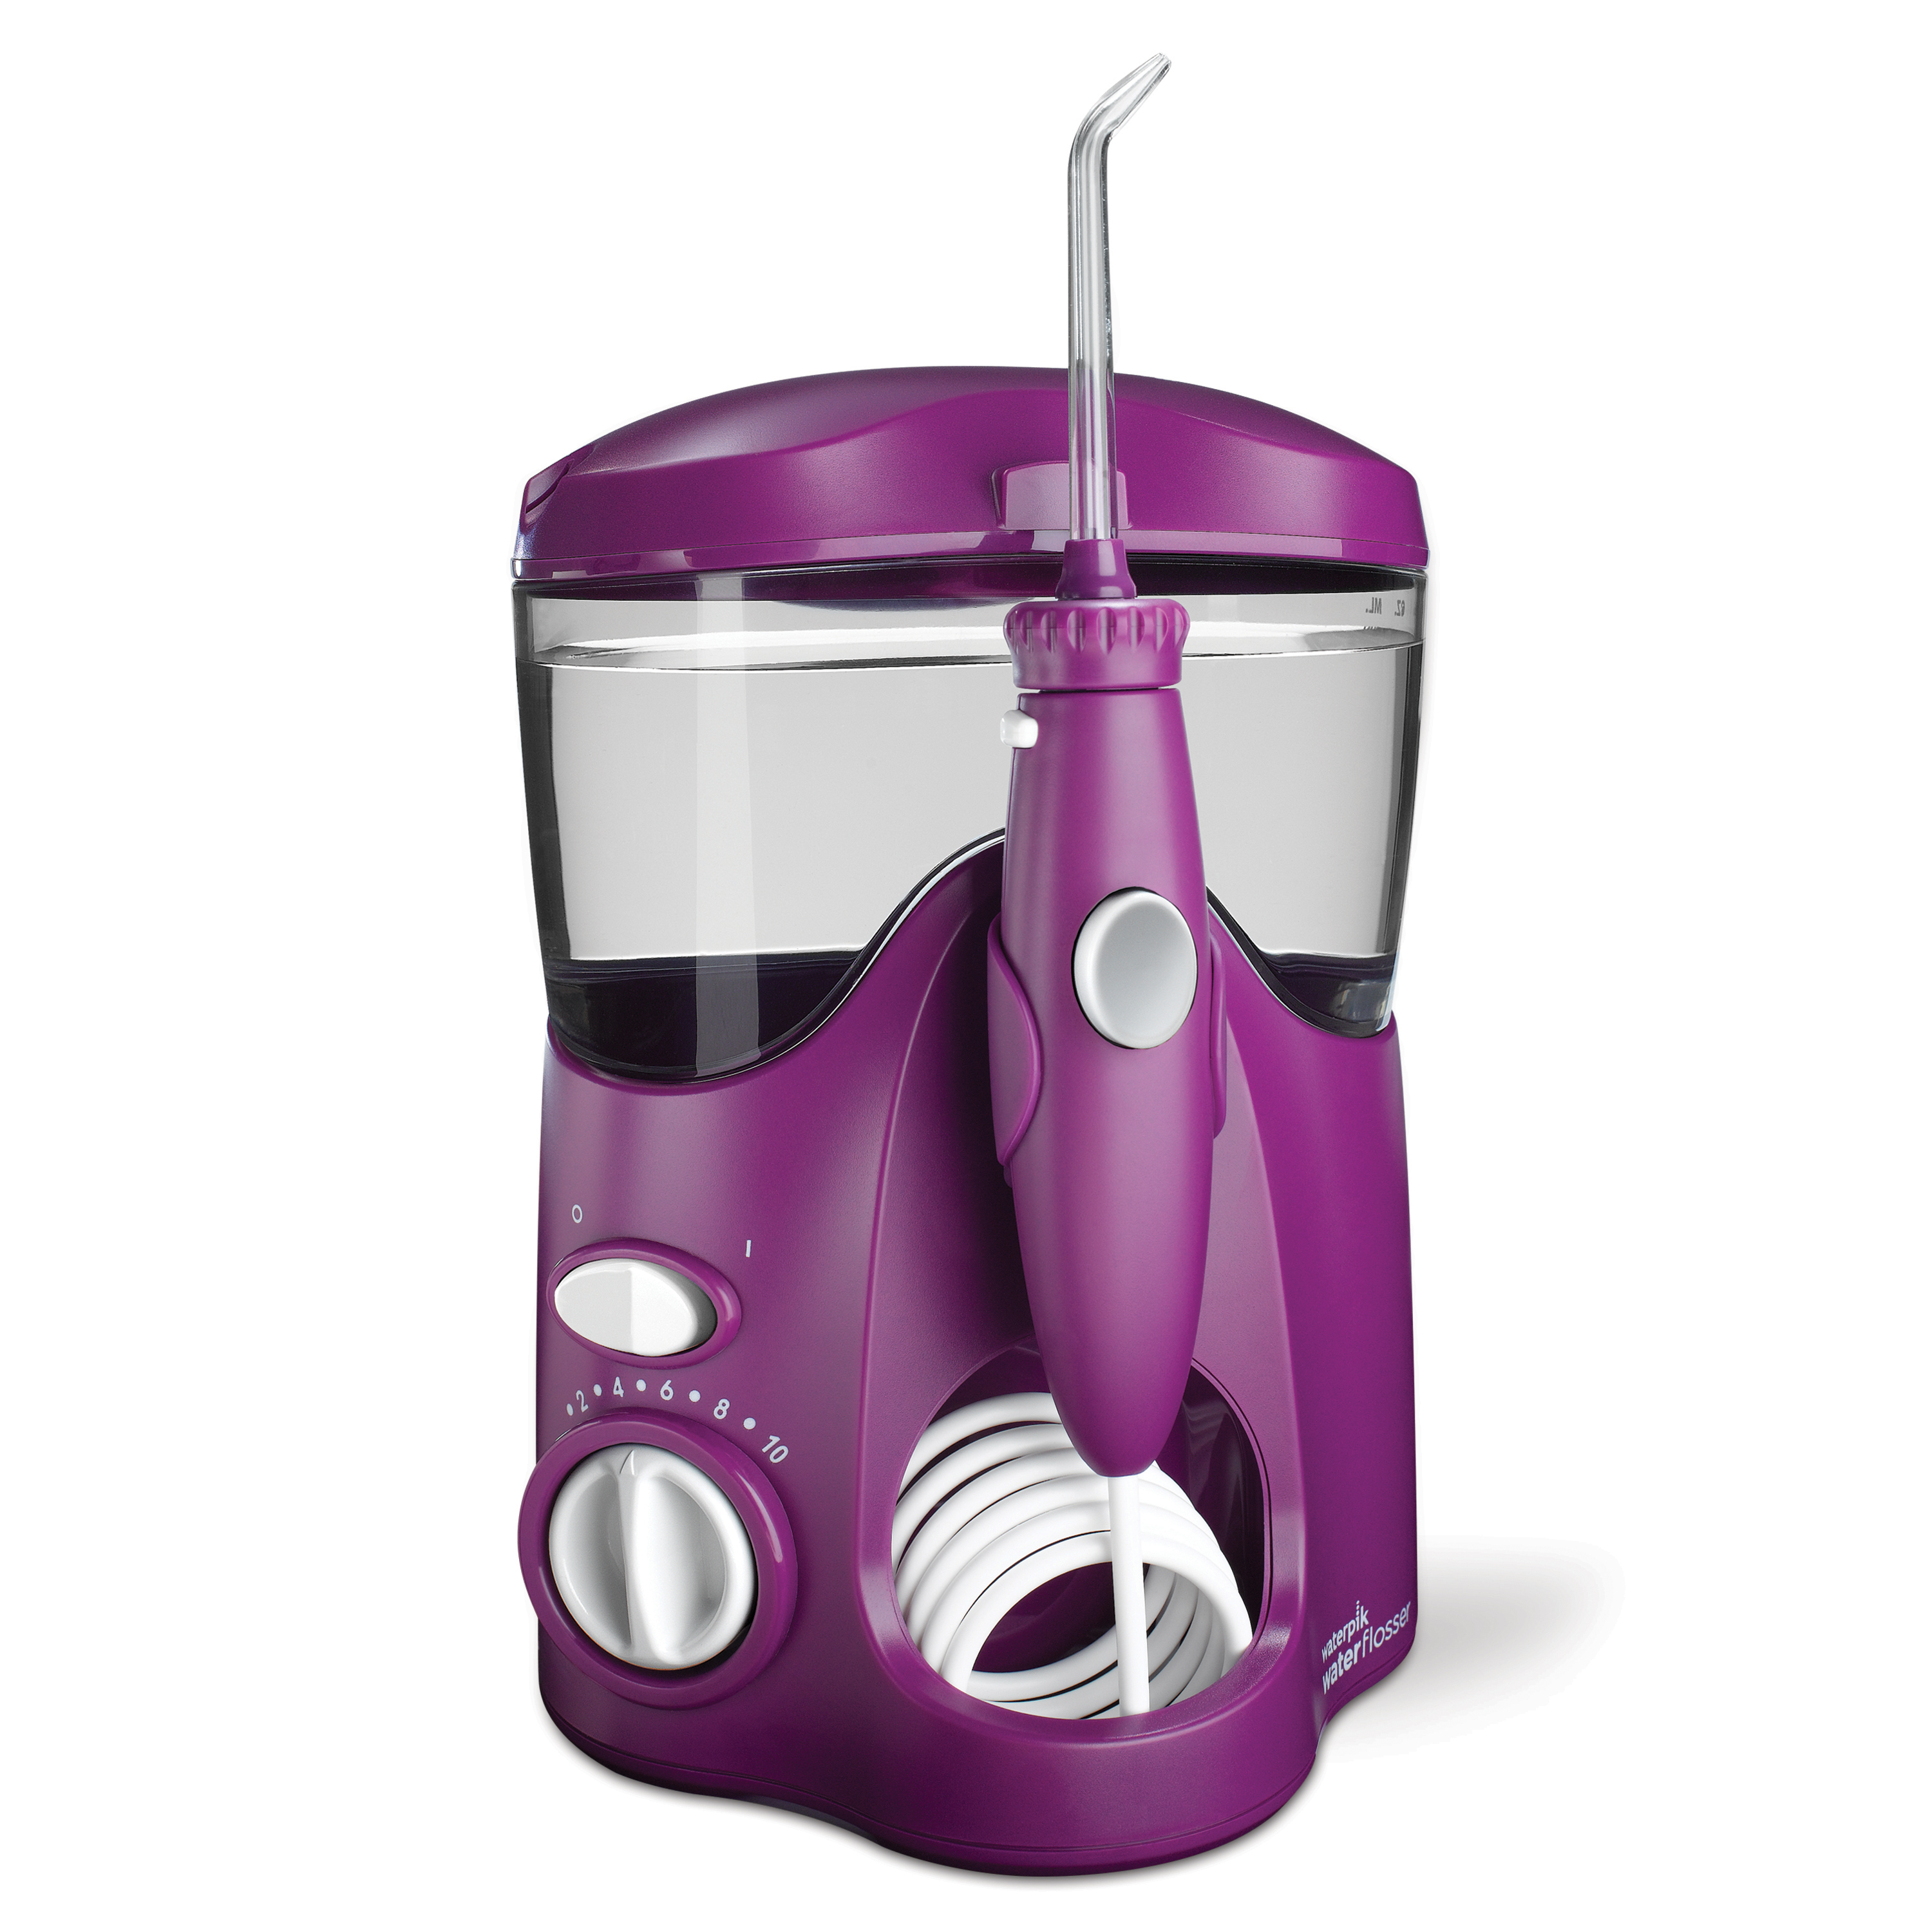 Waterpik Ultra Countertop Water Flosser WP-115, Orchid